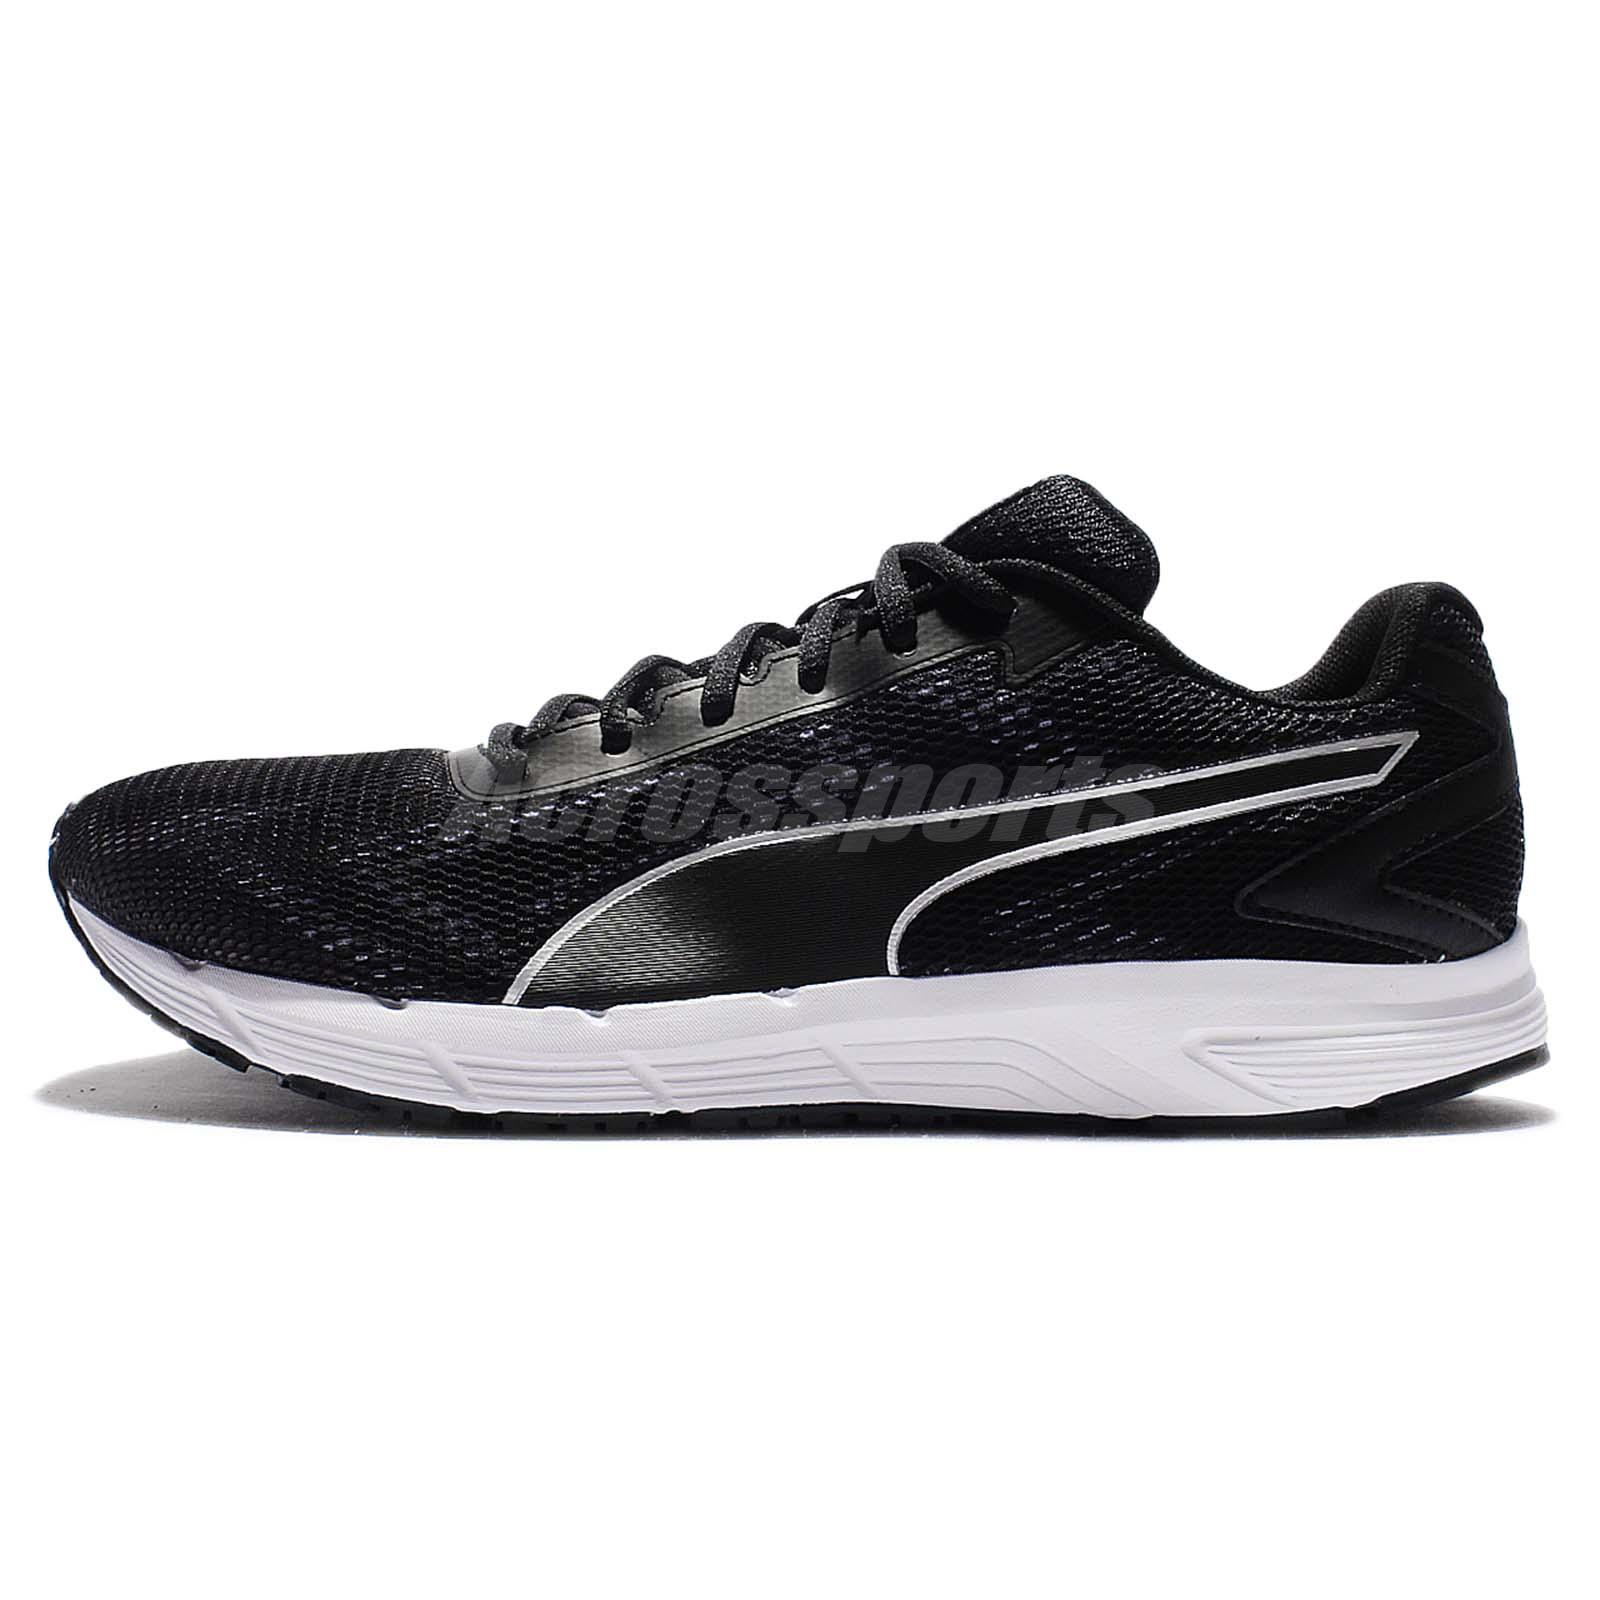 Puma Engine Black White Men Running Shoes Sneakers Trainers 189514-02